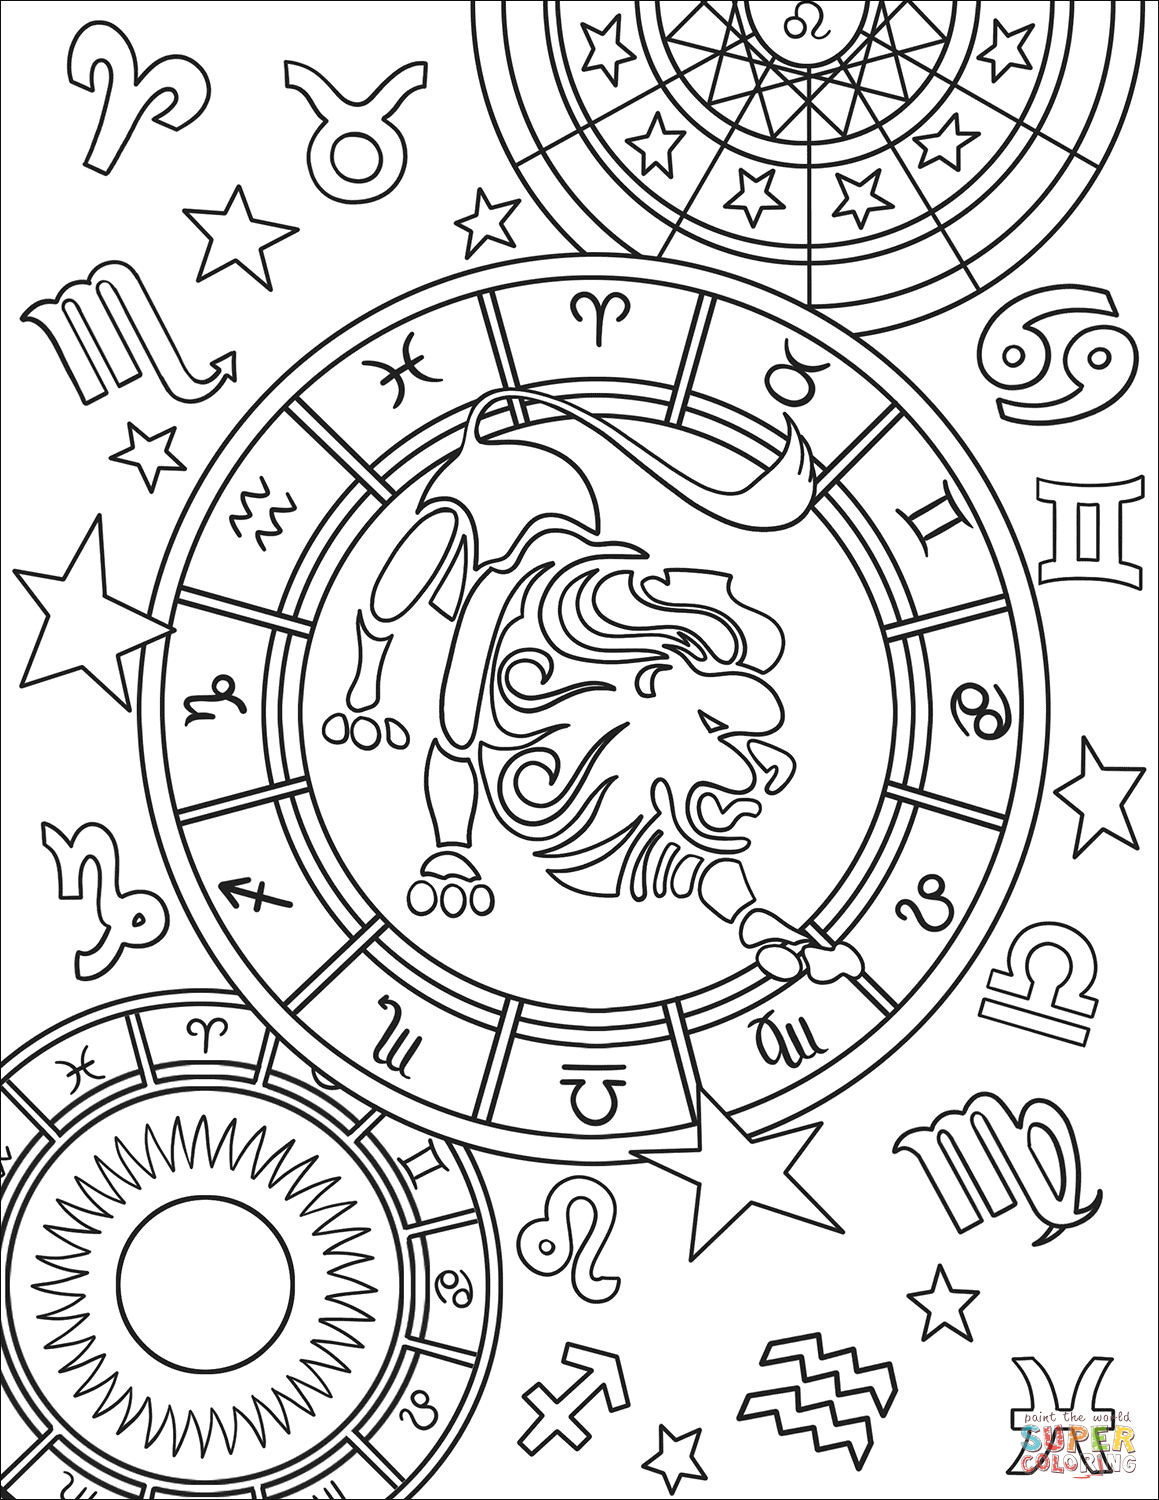 Leo Zodiac Sign Coloring Page Free Printable Coloring Pages